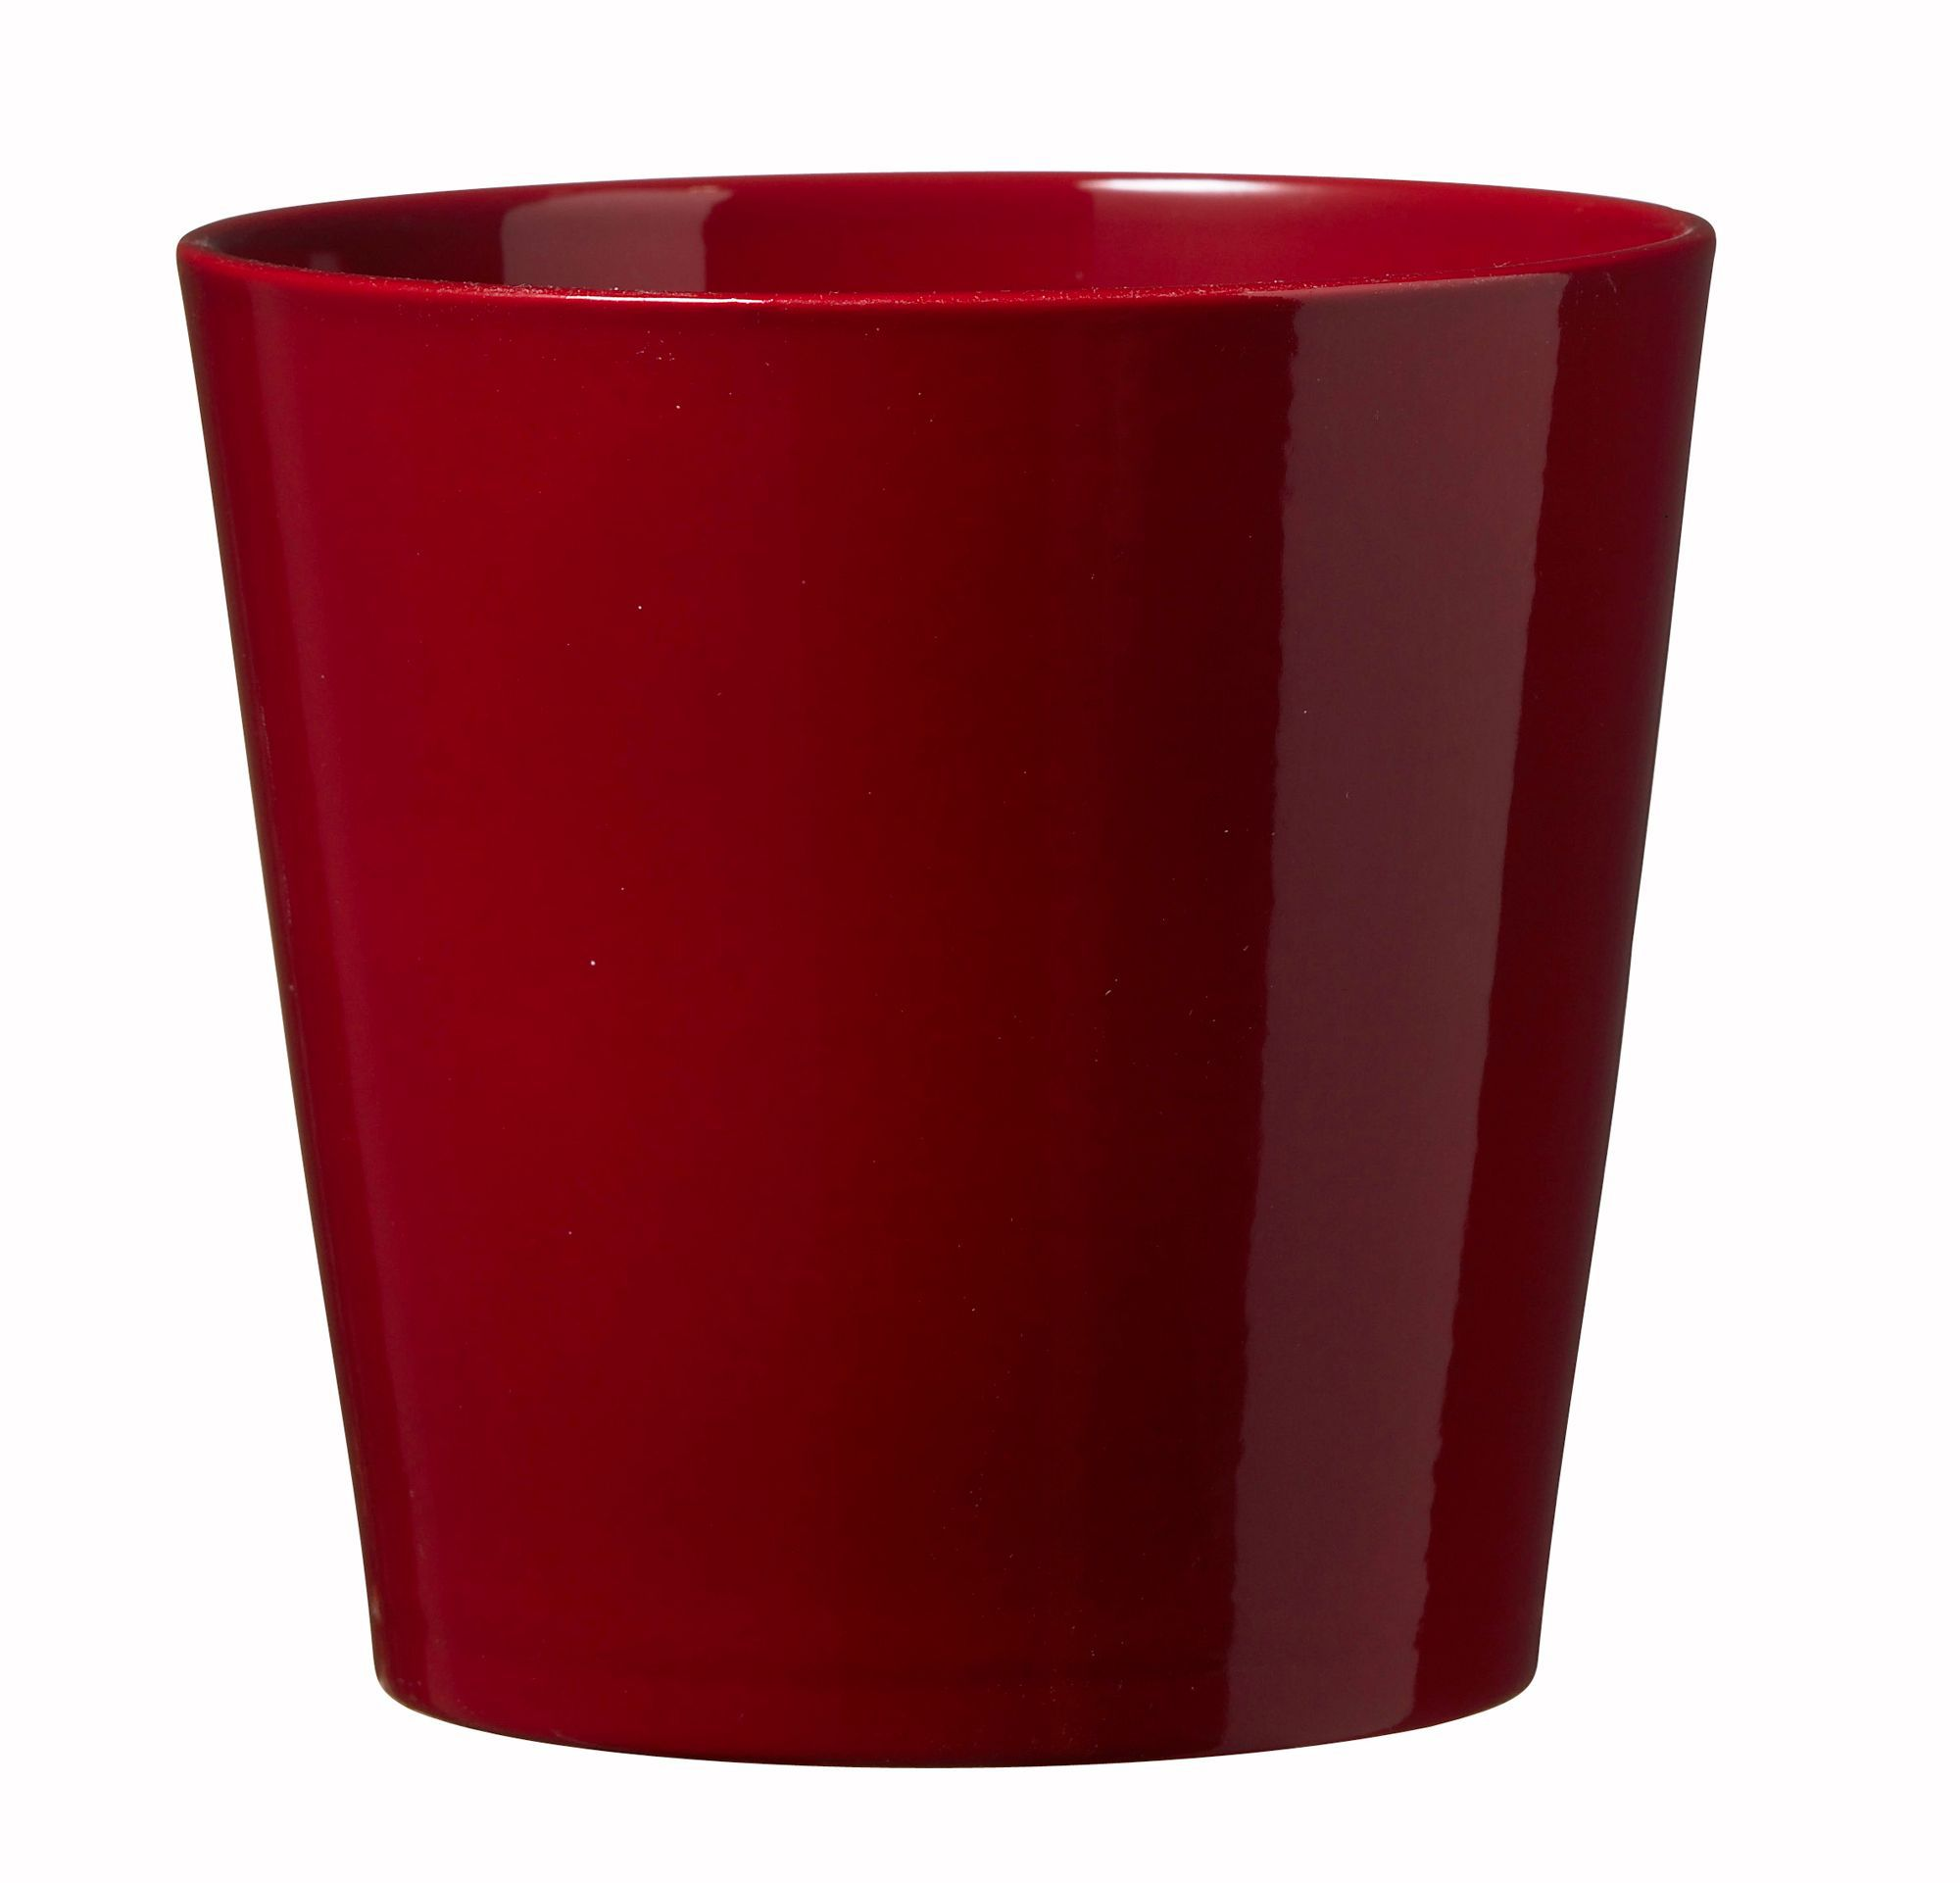 Dallas Glazed Red Gloss Plant Pot H 150mm Dia 160mm Departments Diy At B Amp Q